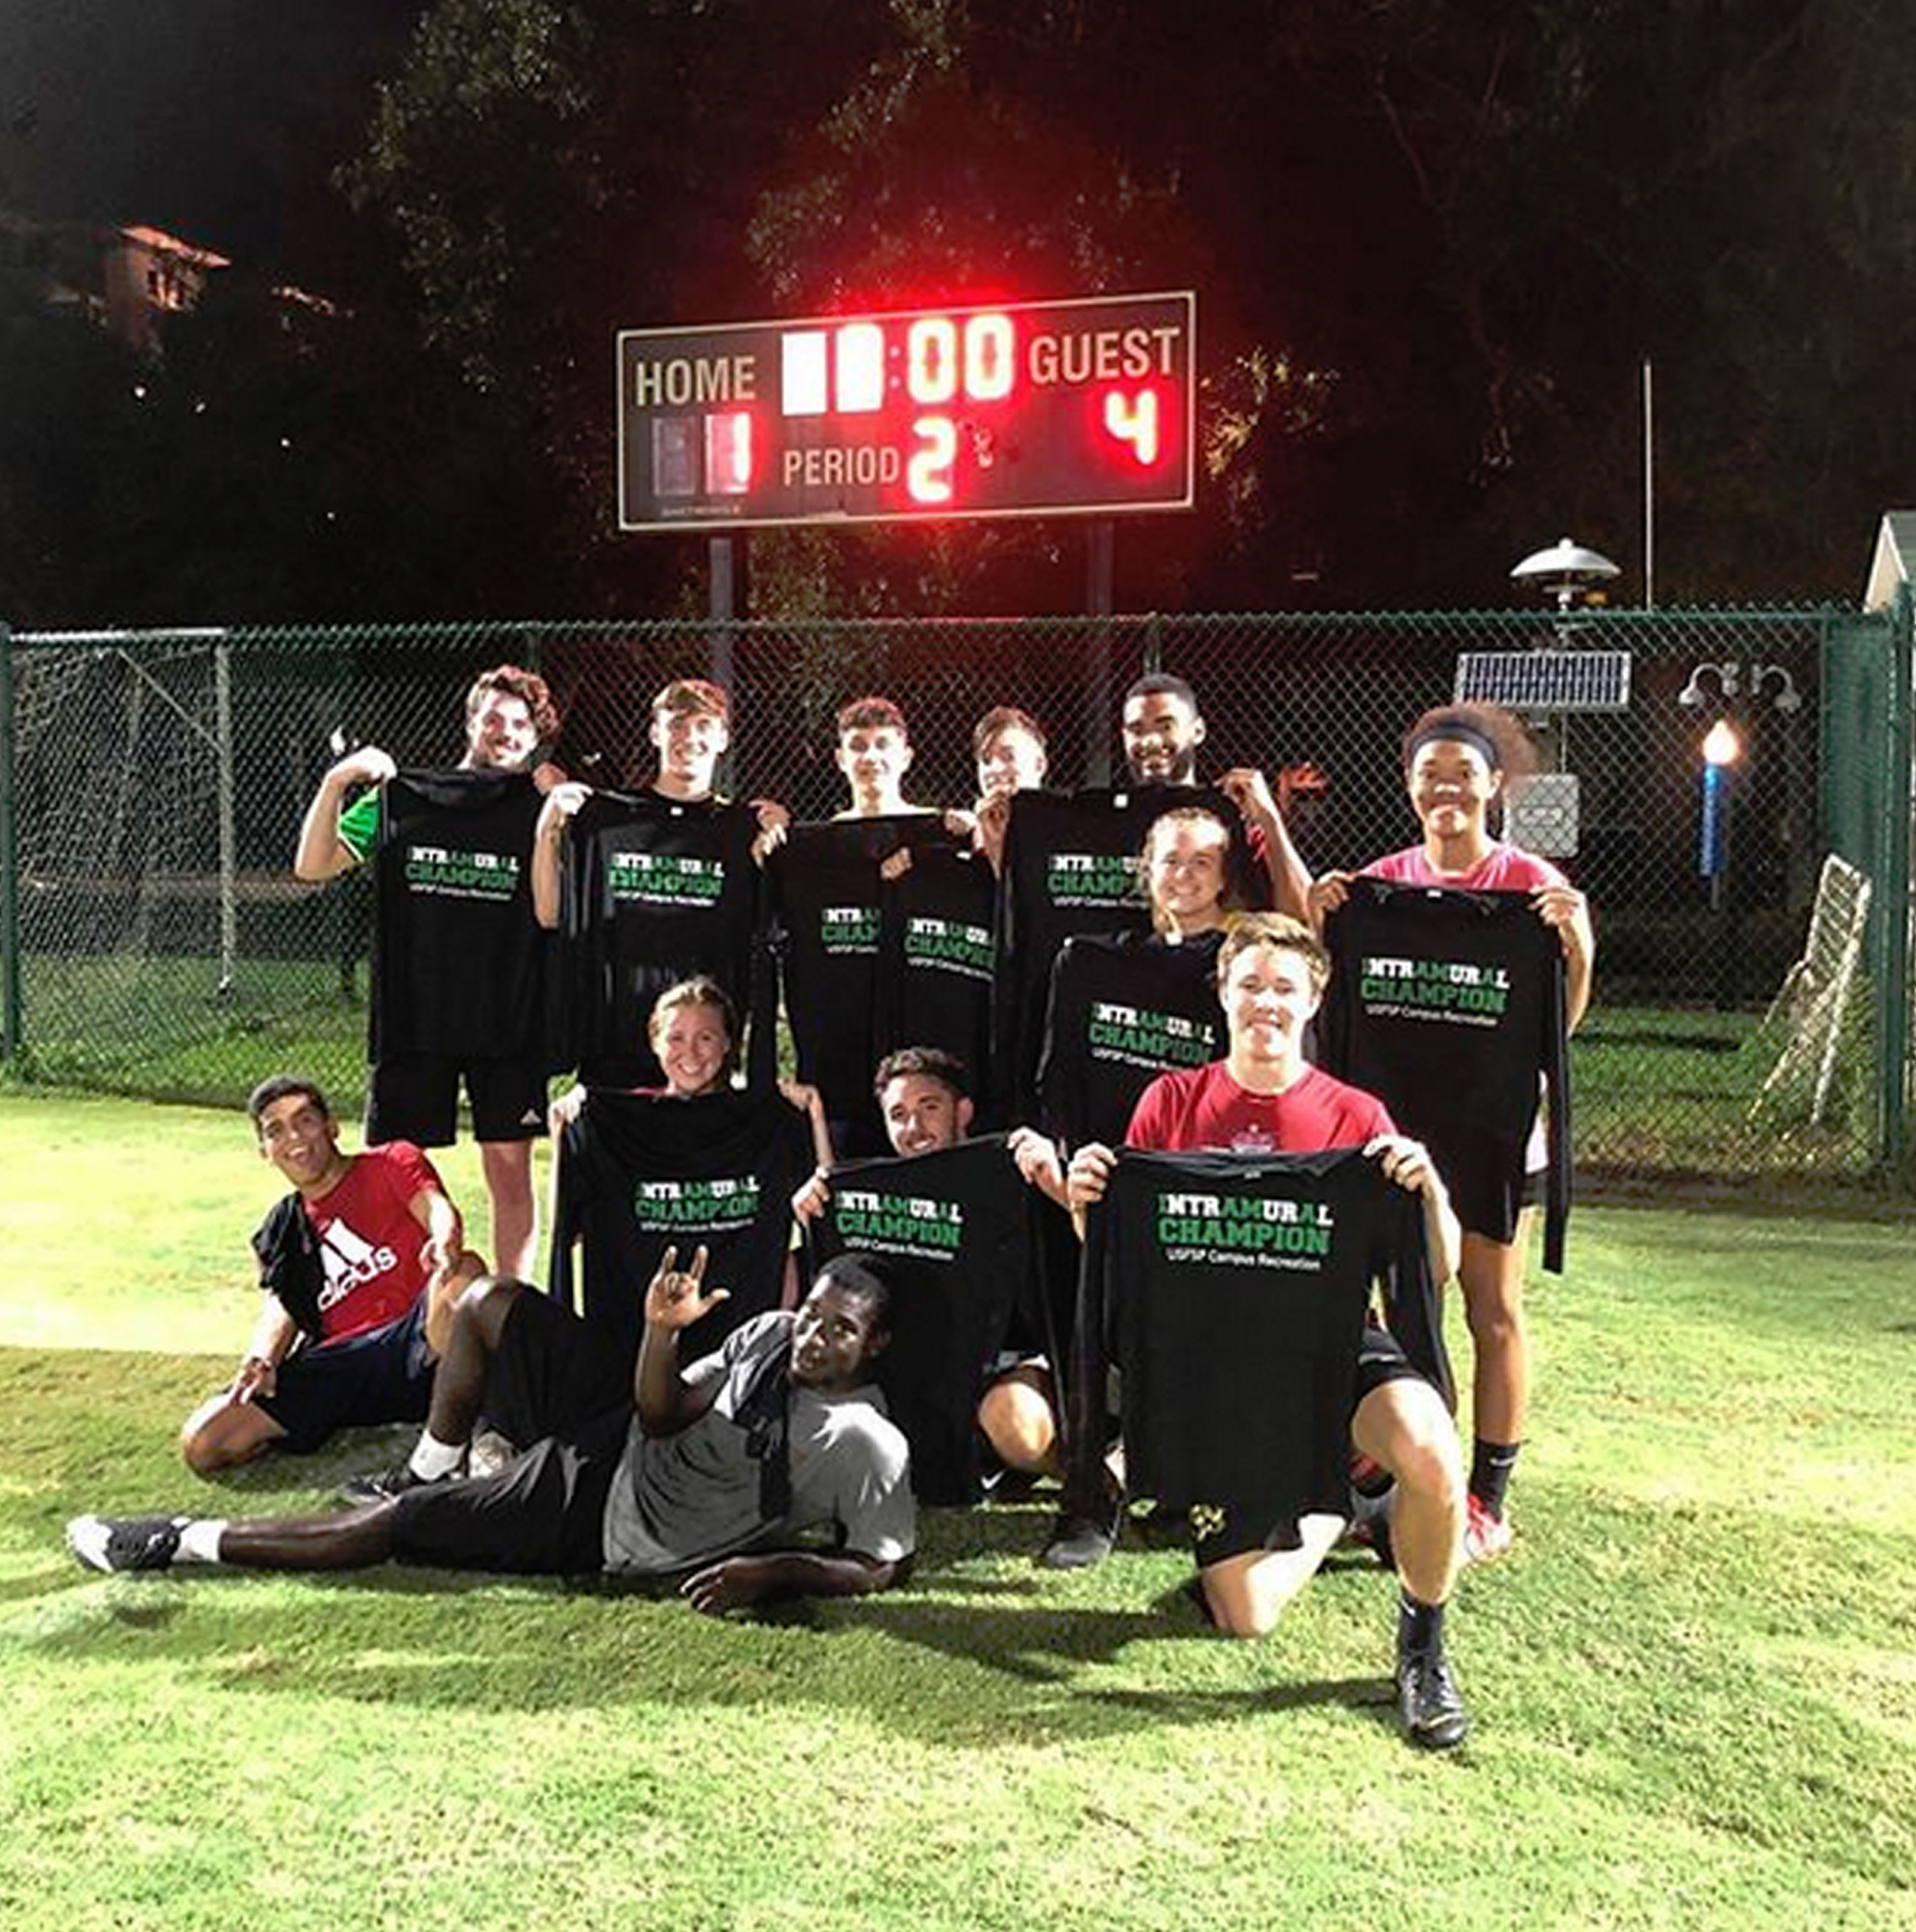 Intramural team poses with victory t-shirts on soccer field